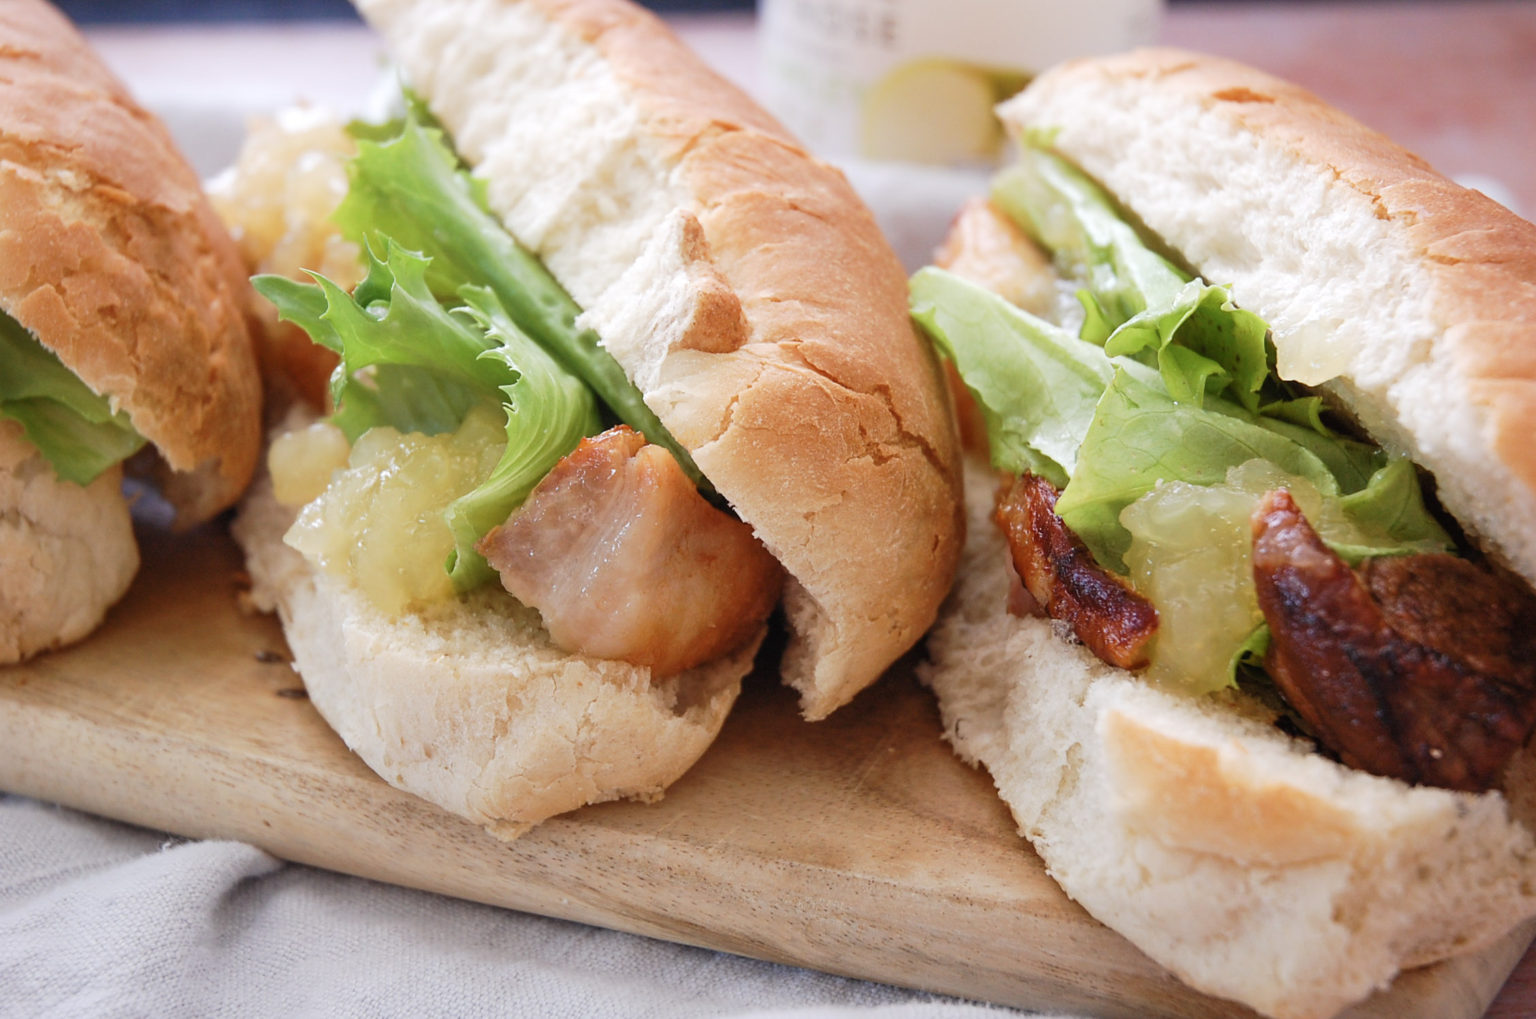 Crispy Pork Belly Sandwich with Apple Sauce